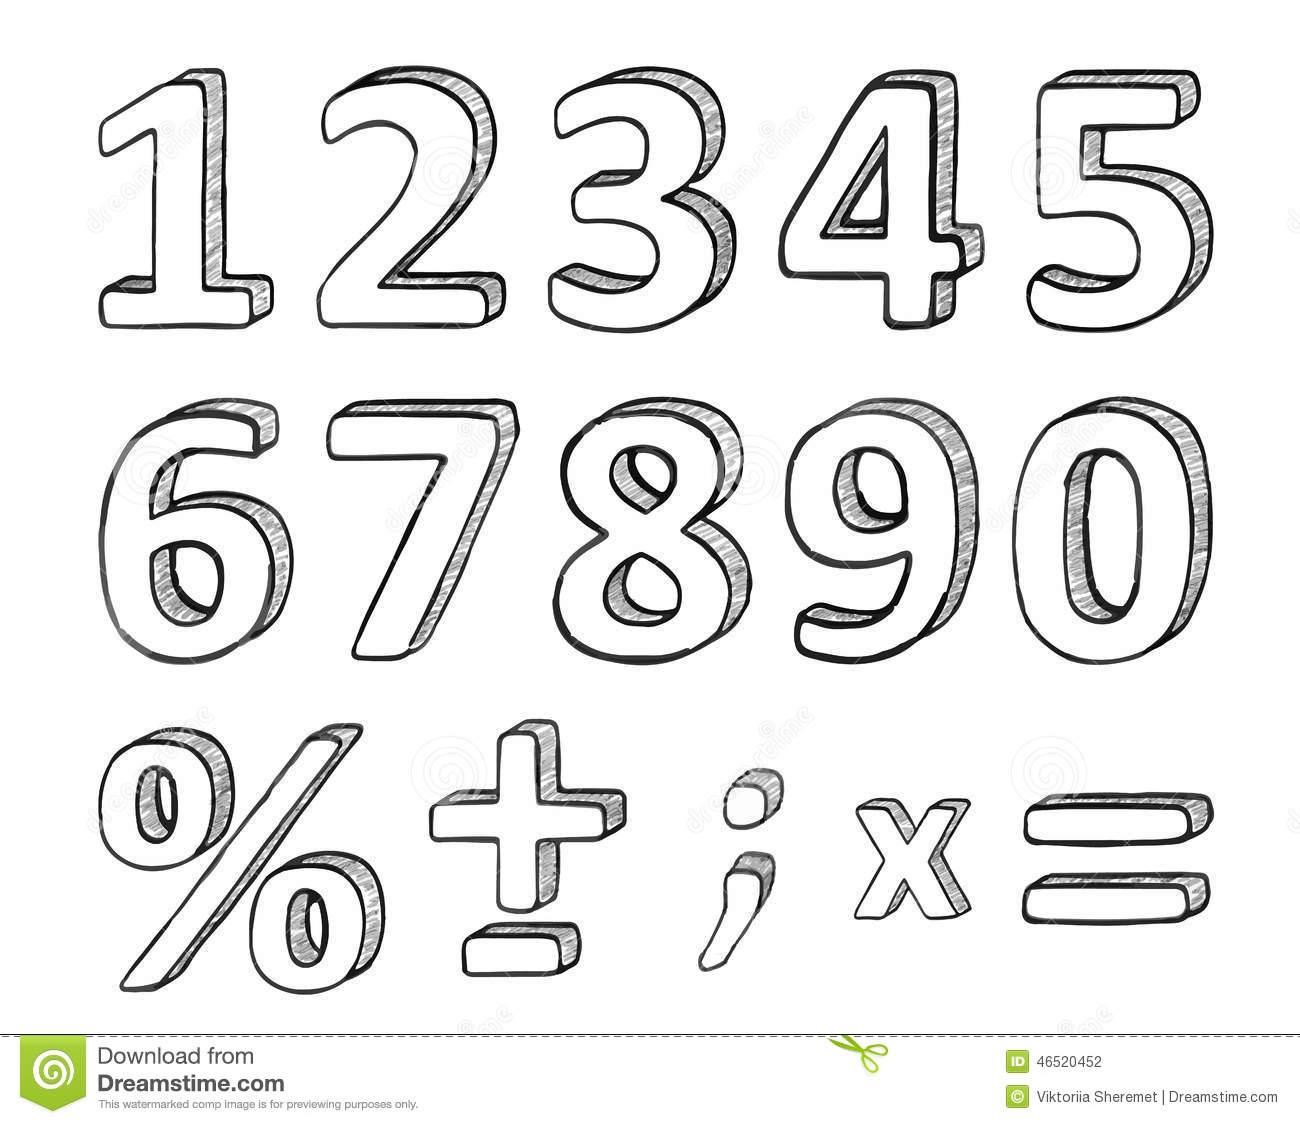 free vector how to write chinese number